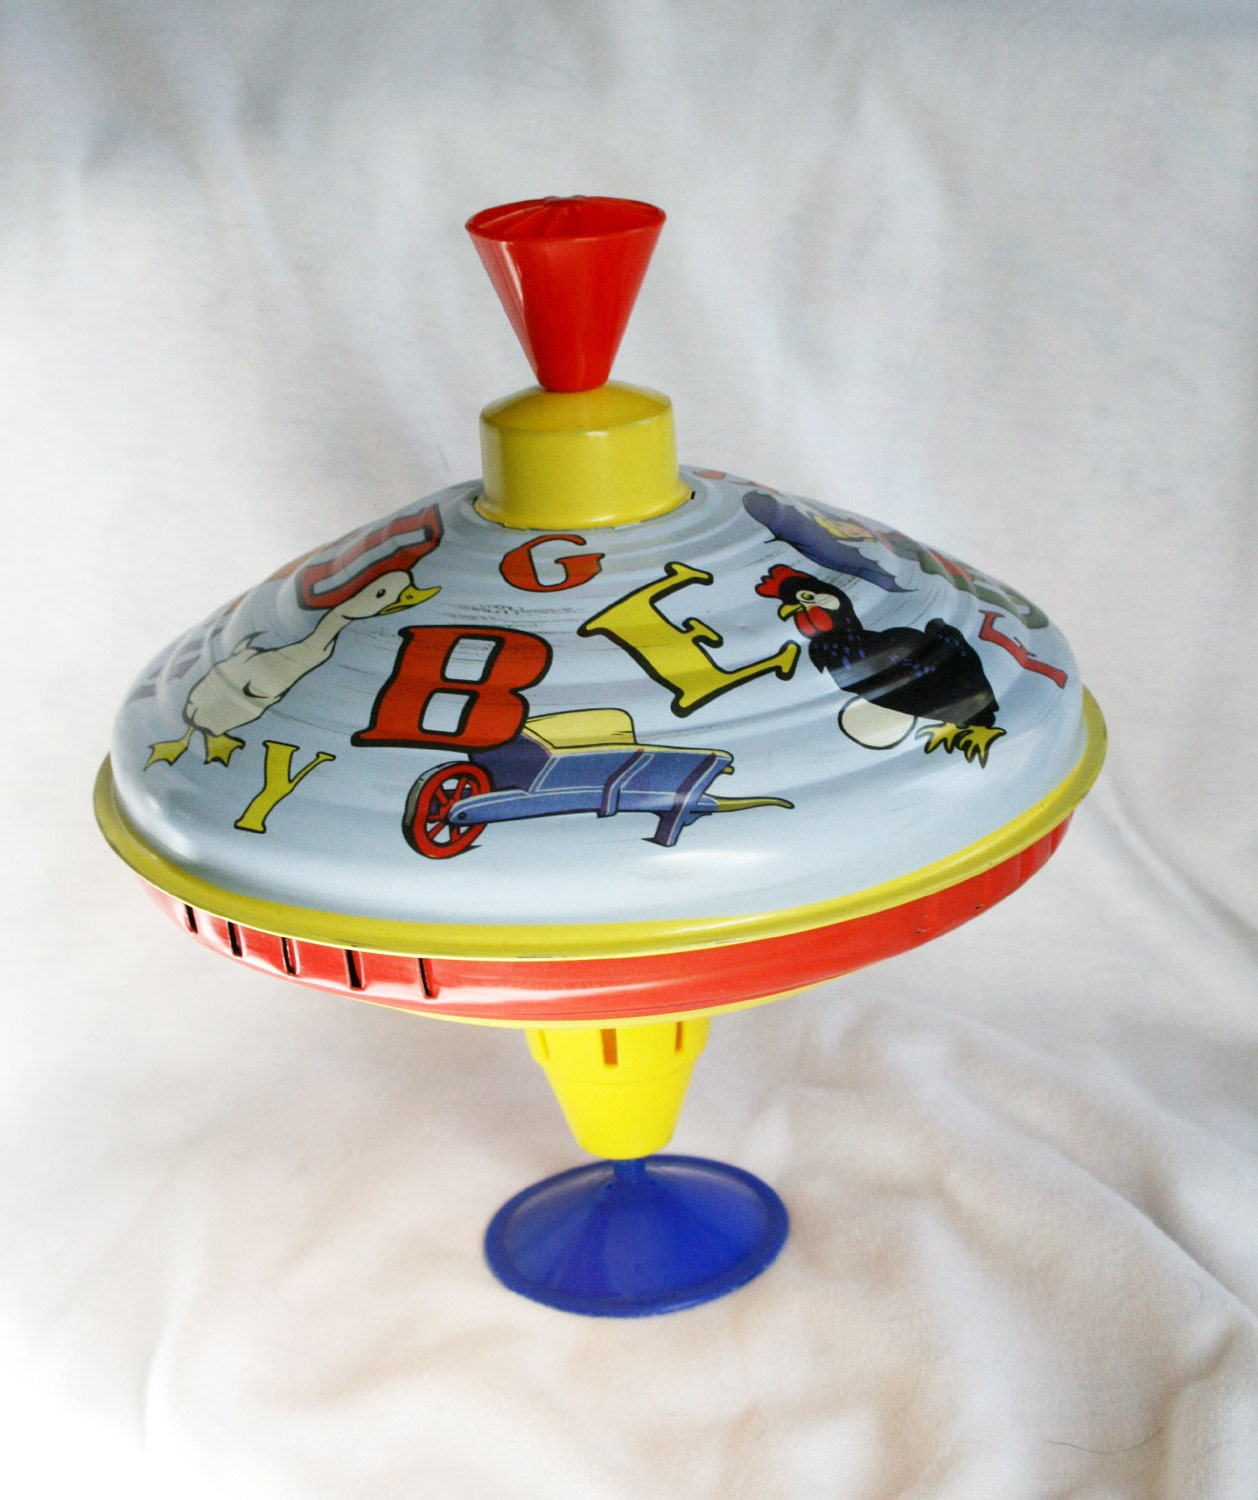 Toy Spinning Top : Vintage metal top spinning toy made in china